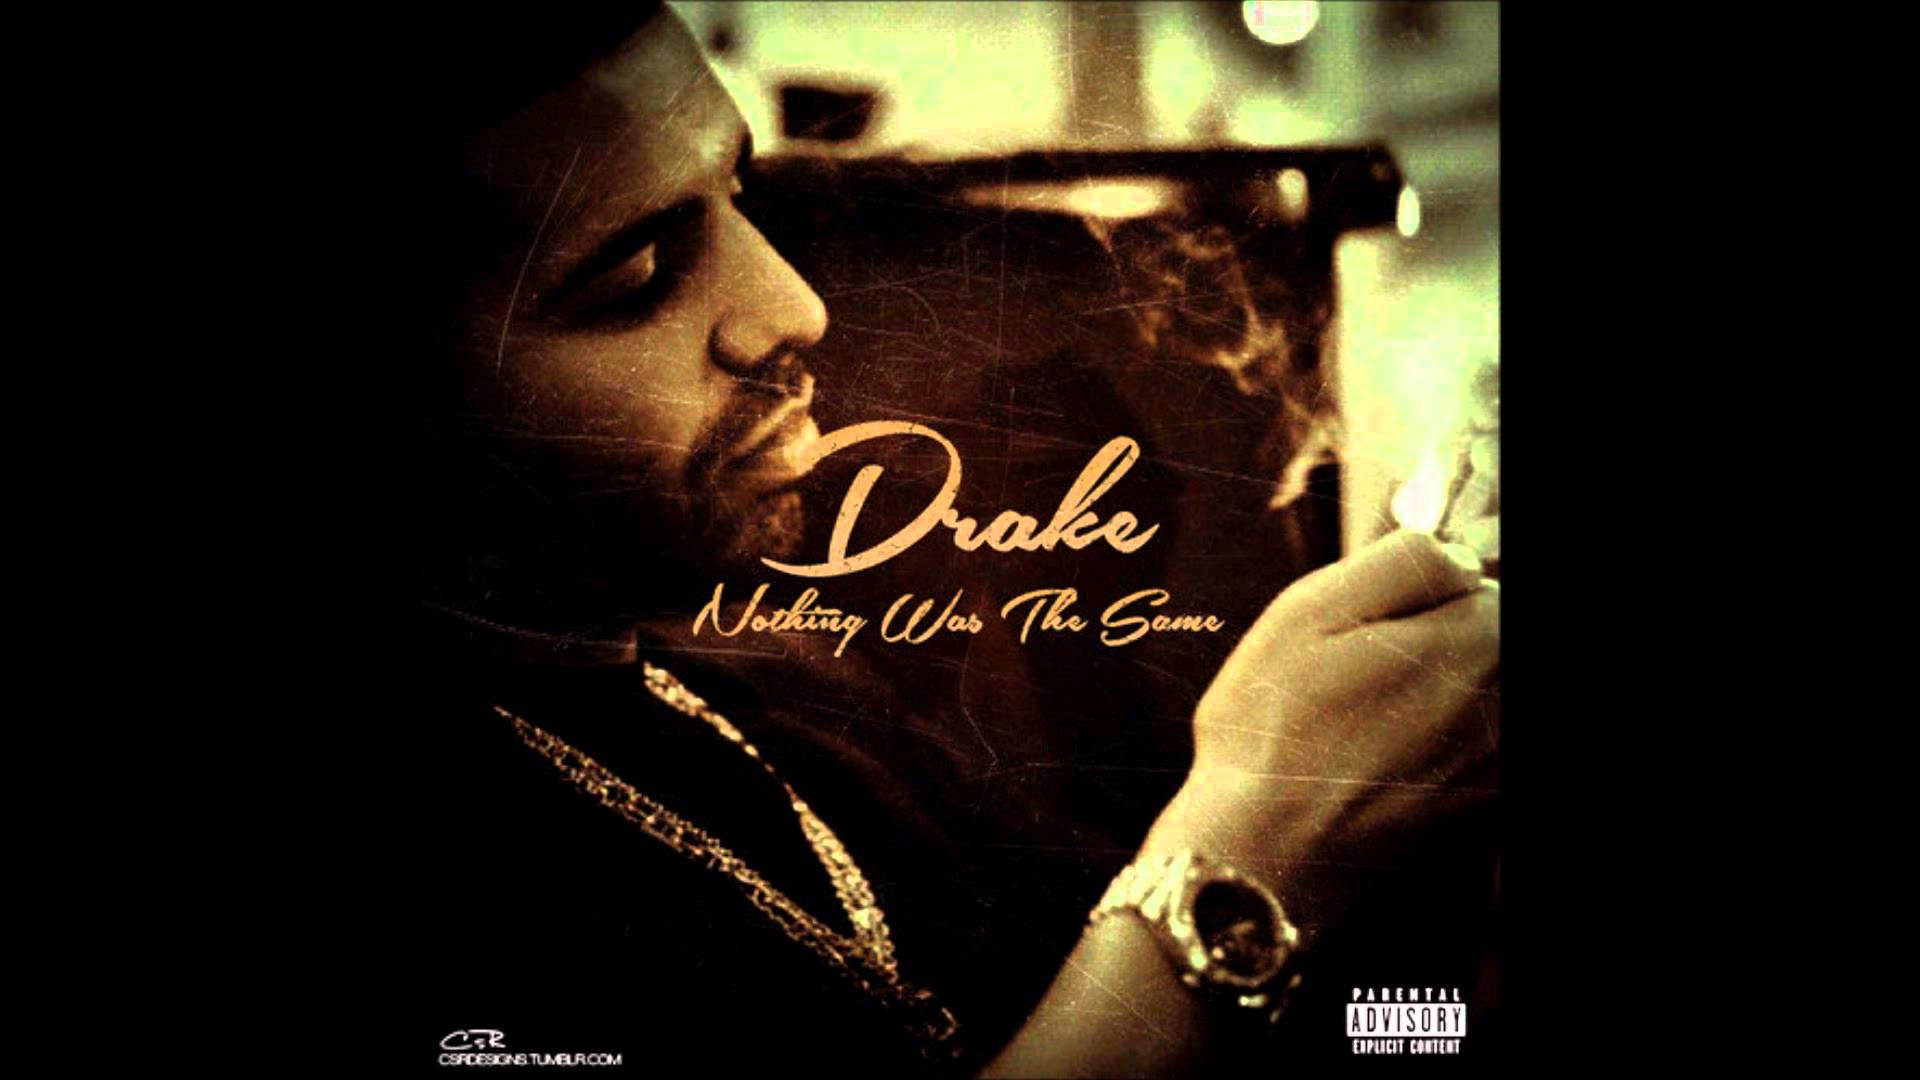 drake-nothing-was-the-same-album.html